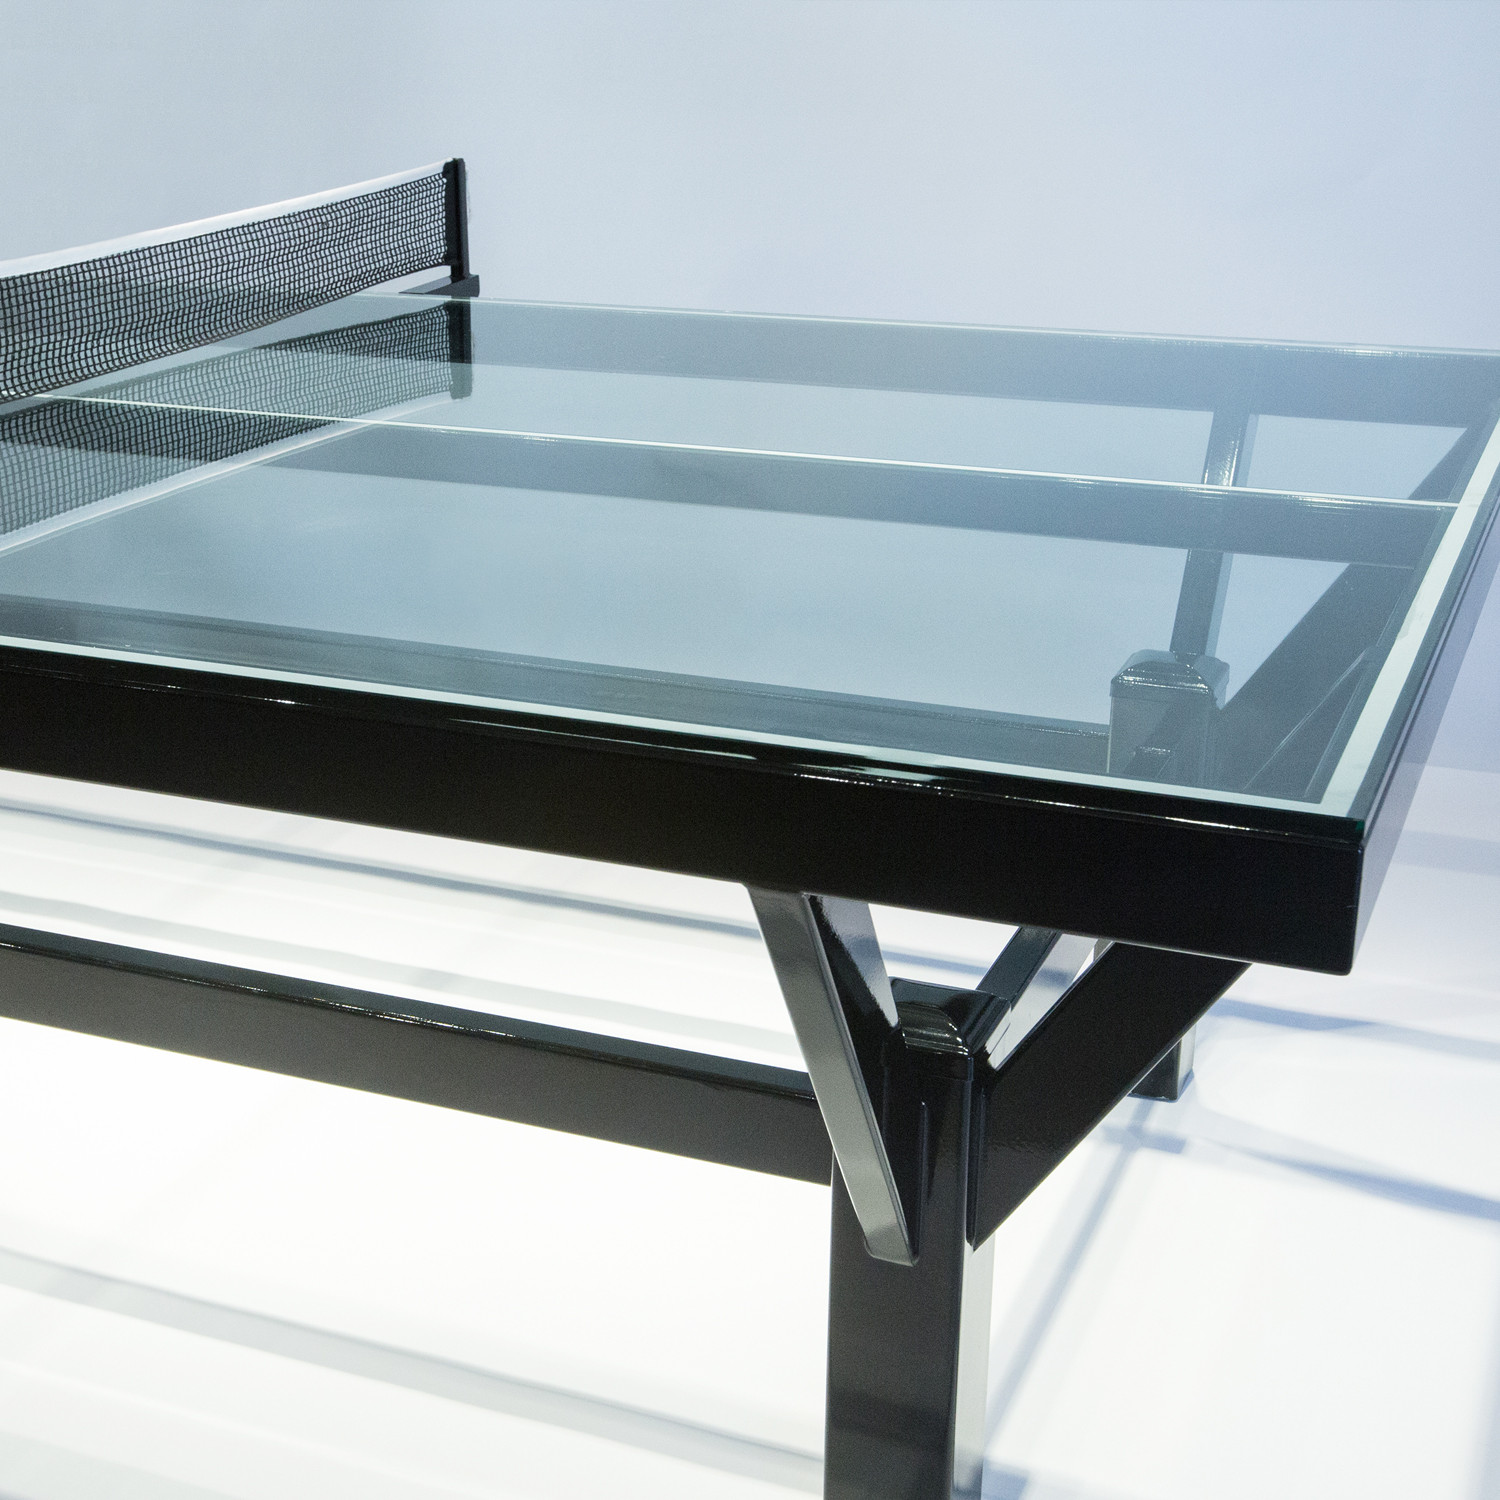 The Travismathew Glass Top Table Travis Mathew Touch Of